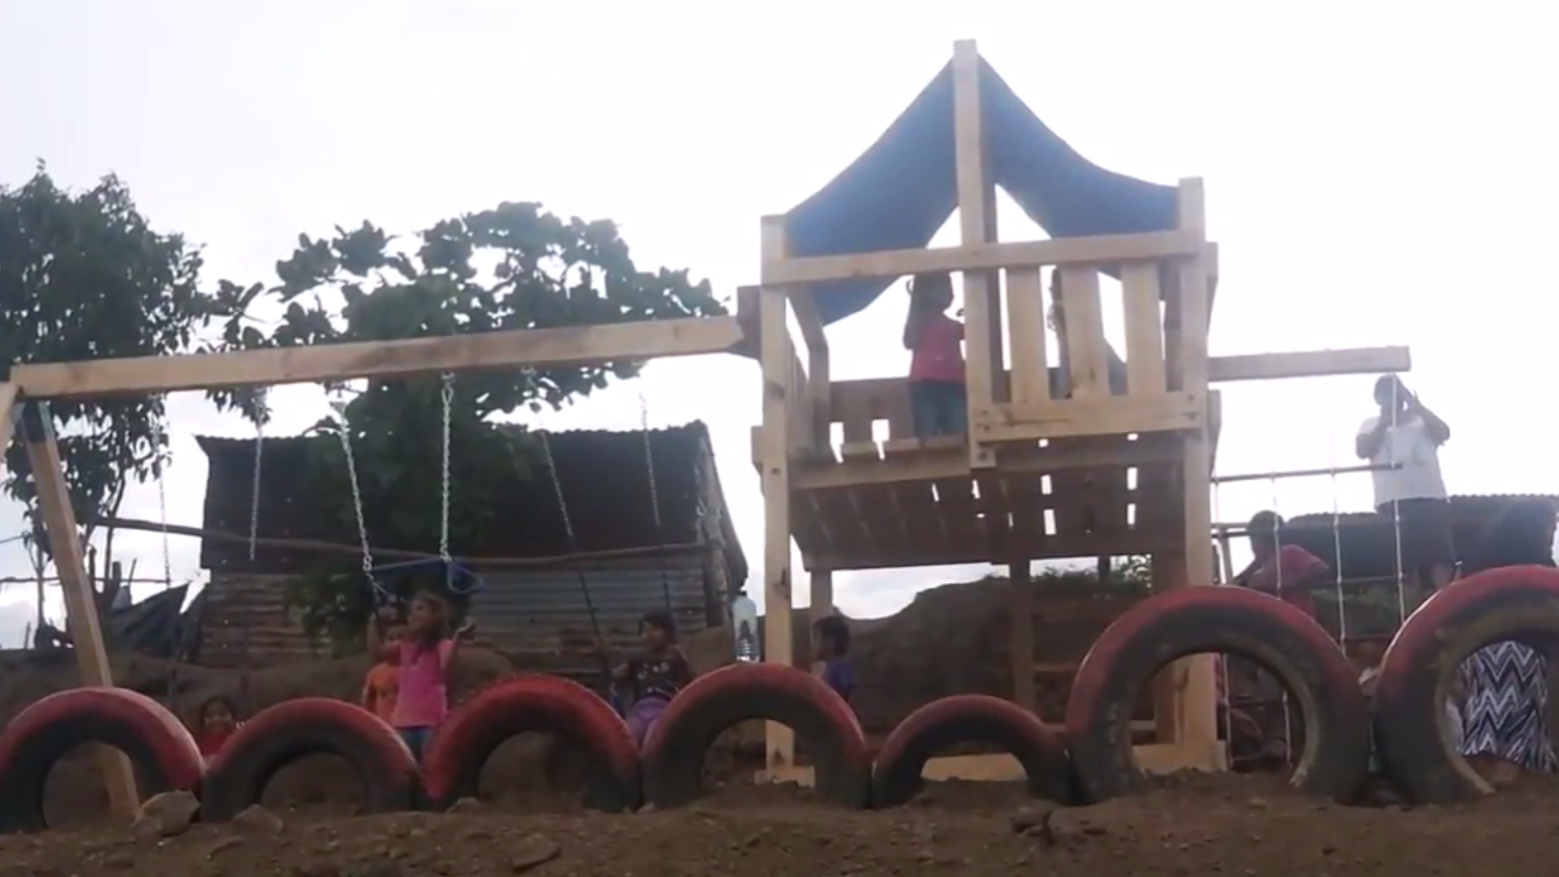 The playset Jay built for his Eagle Scout Project in Guatemala